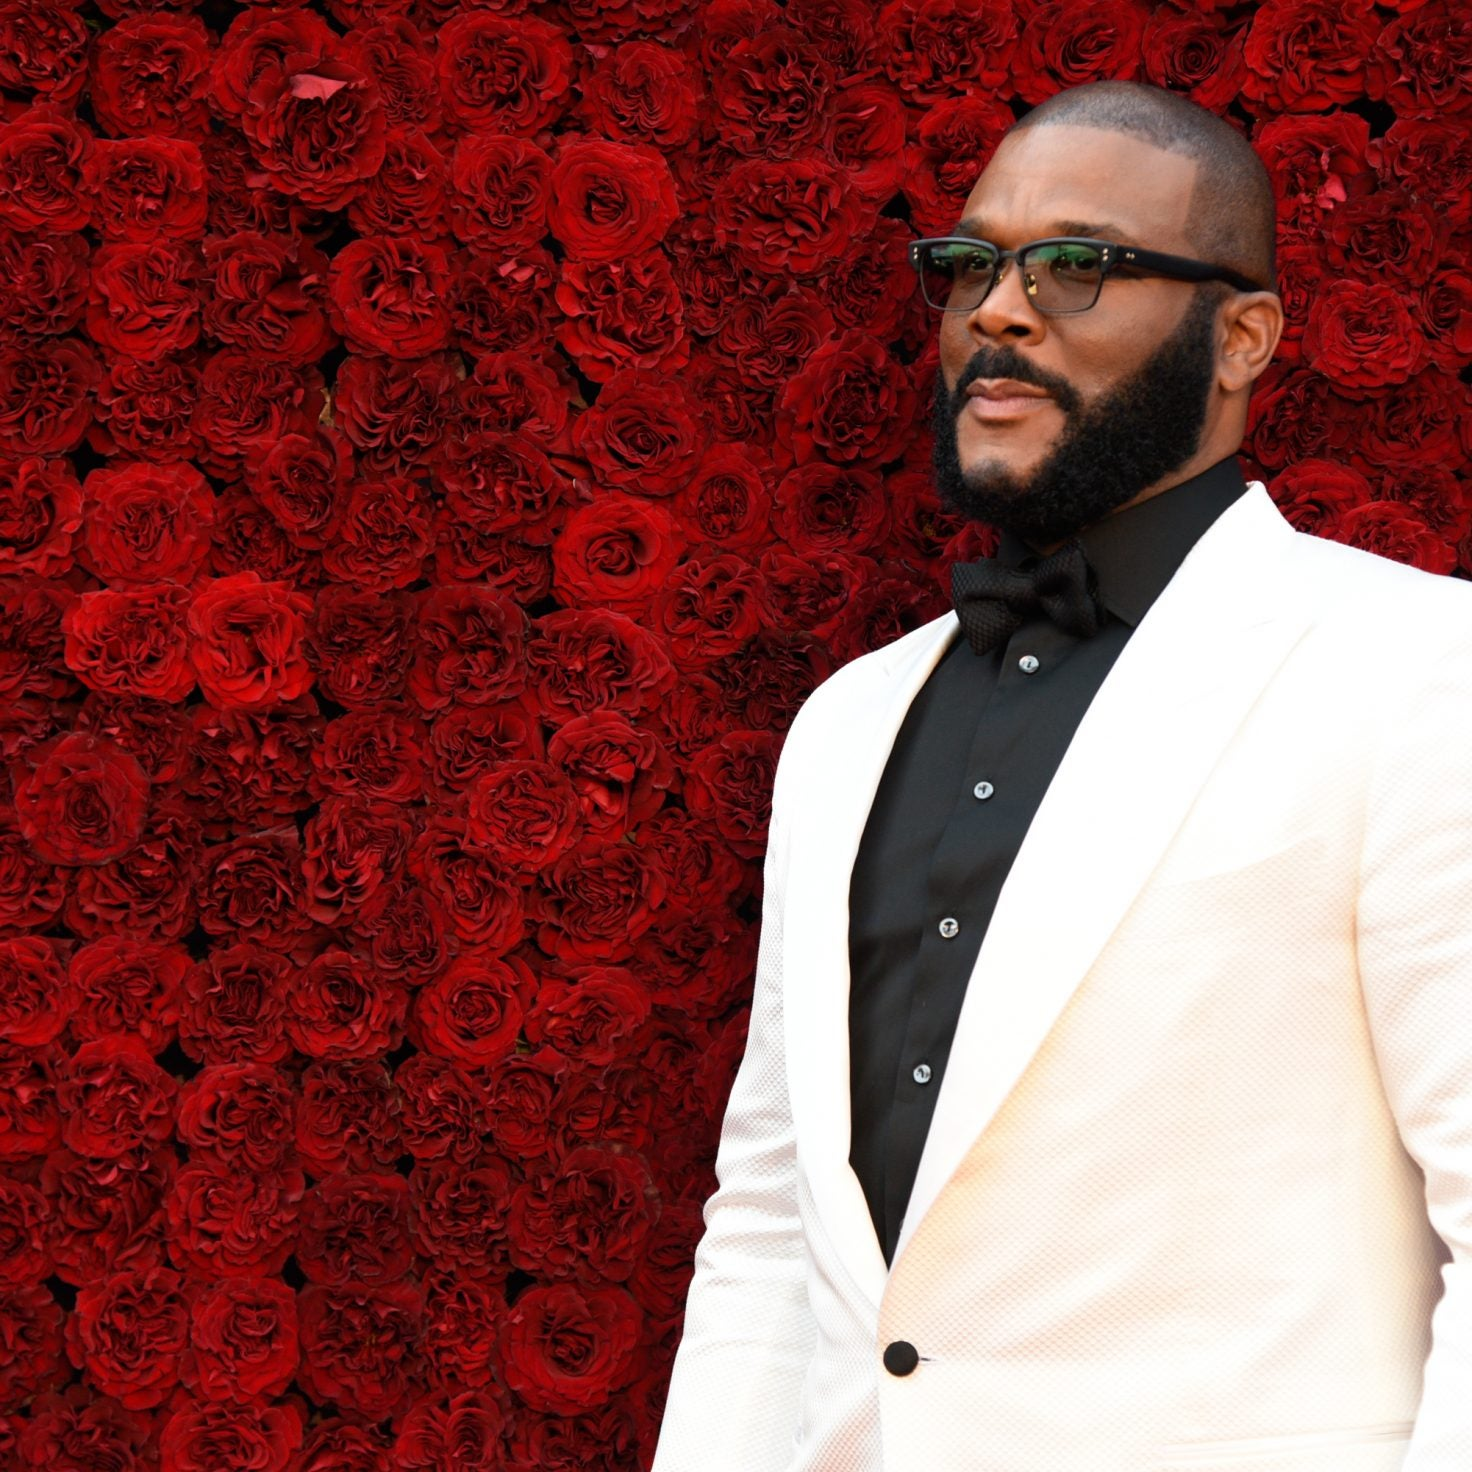 Celebrities Join Tyler Perry's New Challenge To Inspire Others Amid Coronavirus Outbreak